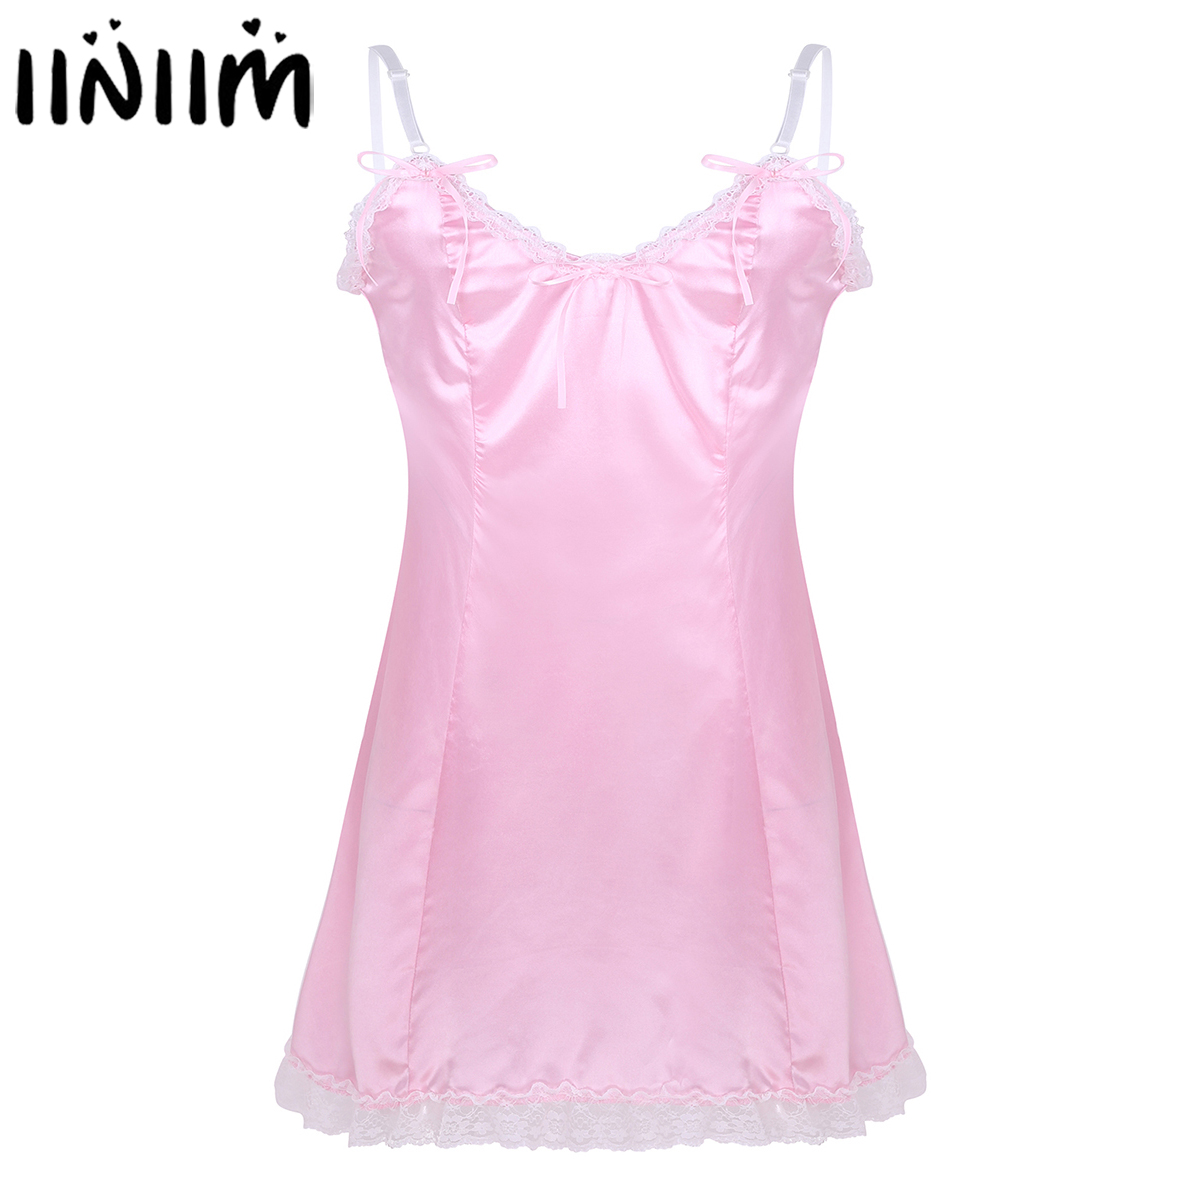 Men <font><b>Adults</b></font> Novelty Exotic <font><b>Dresses</b></font> <font><b>Sexy</b></font> Male Nightwear Satin Straps Low Back Sissy Baby Fancy Costume Clubwear Vintage Slip <font><b>Dress</b></font> image